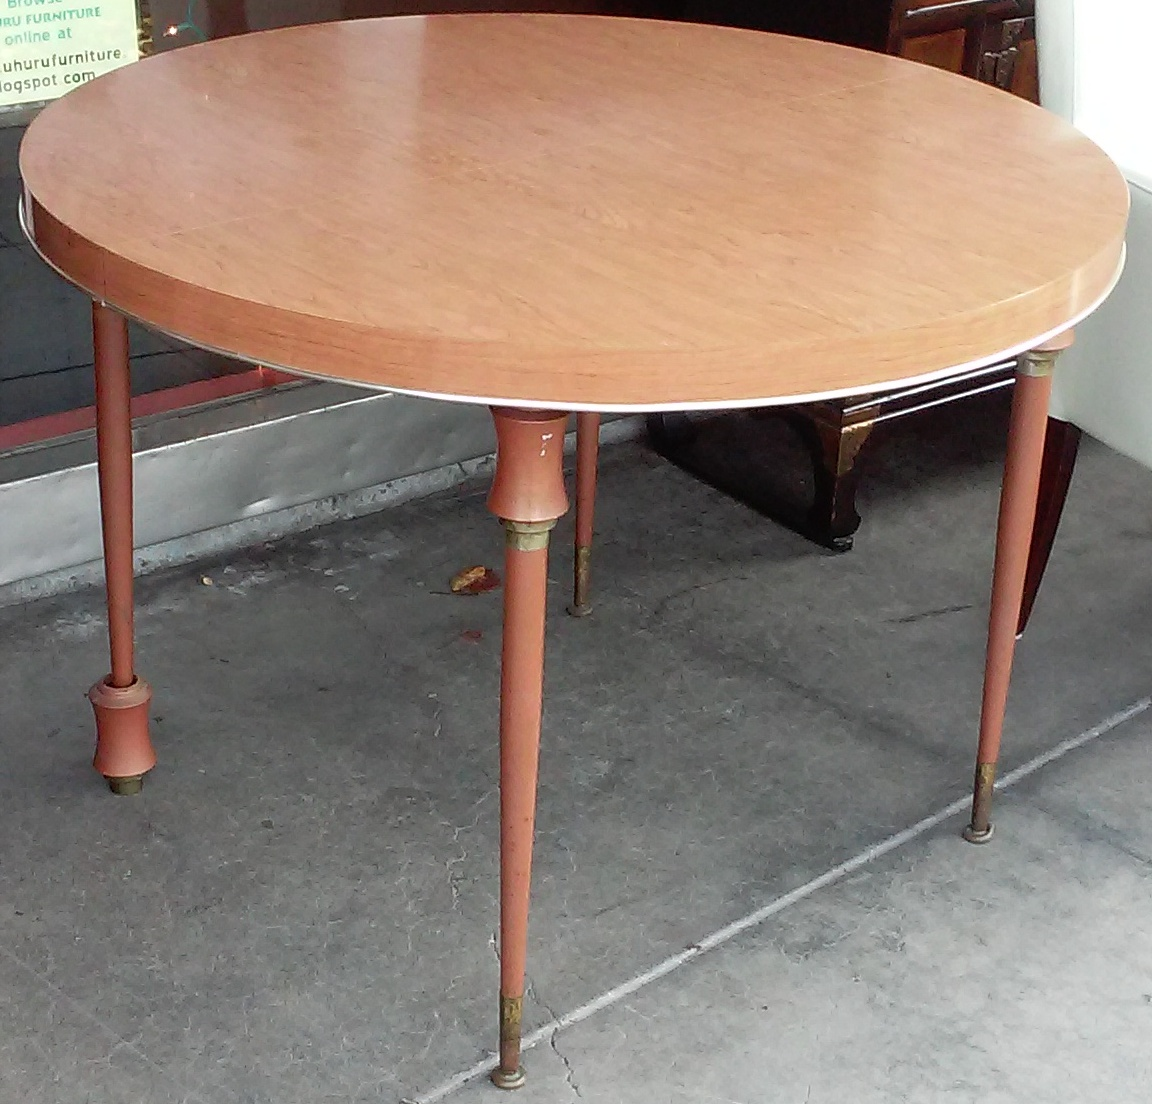 Uhuru furniture collectibles sold vintage formica for Table formica